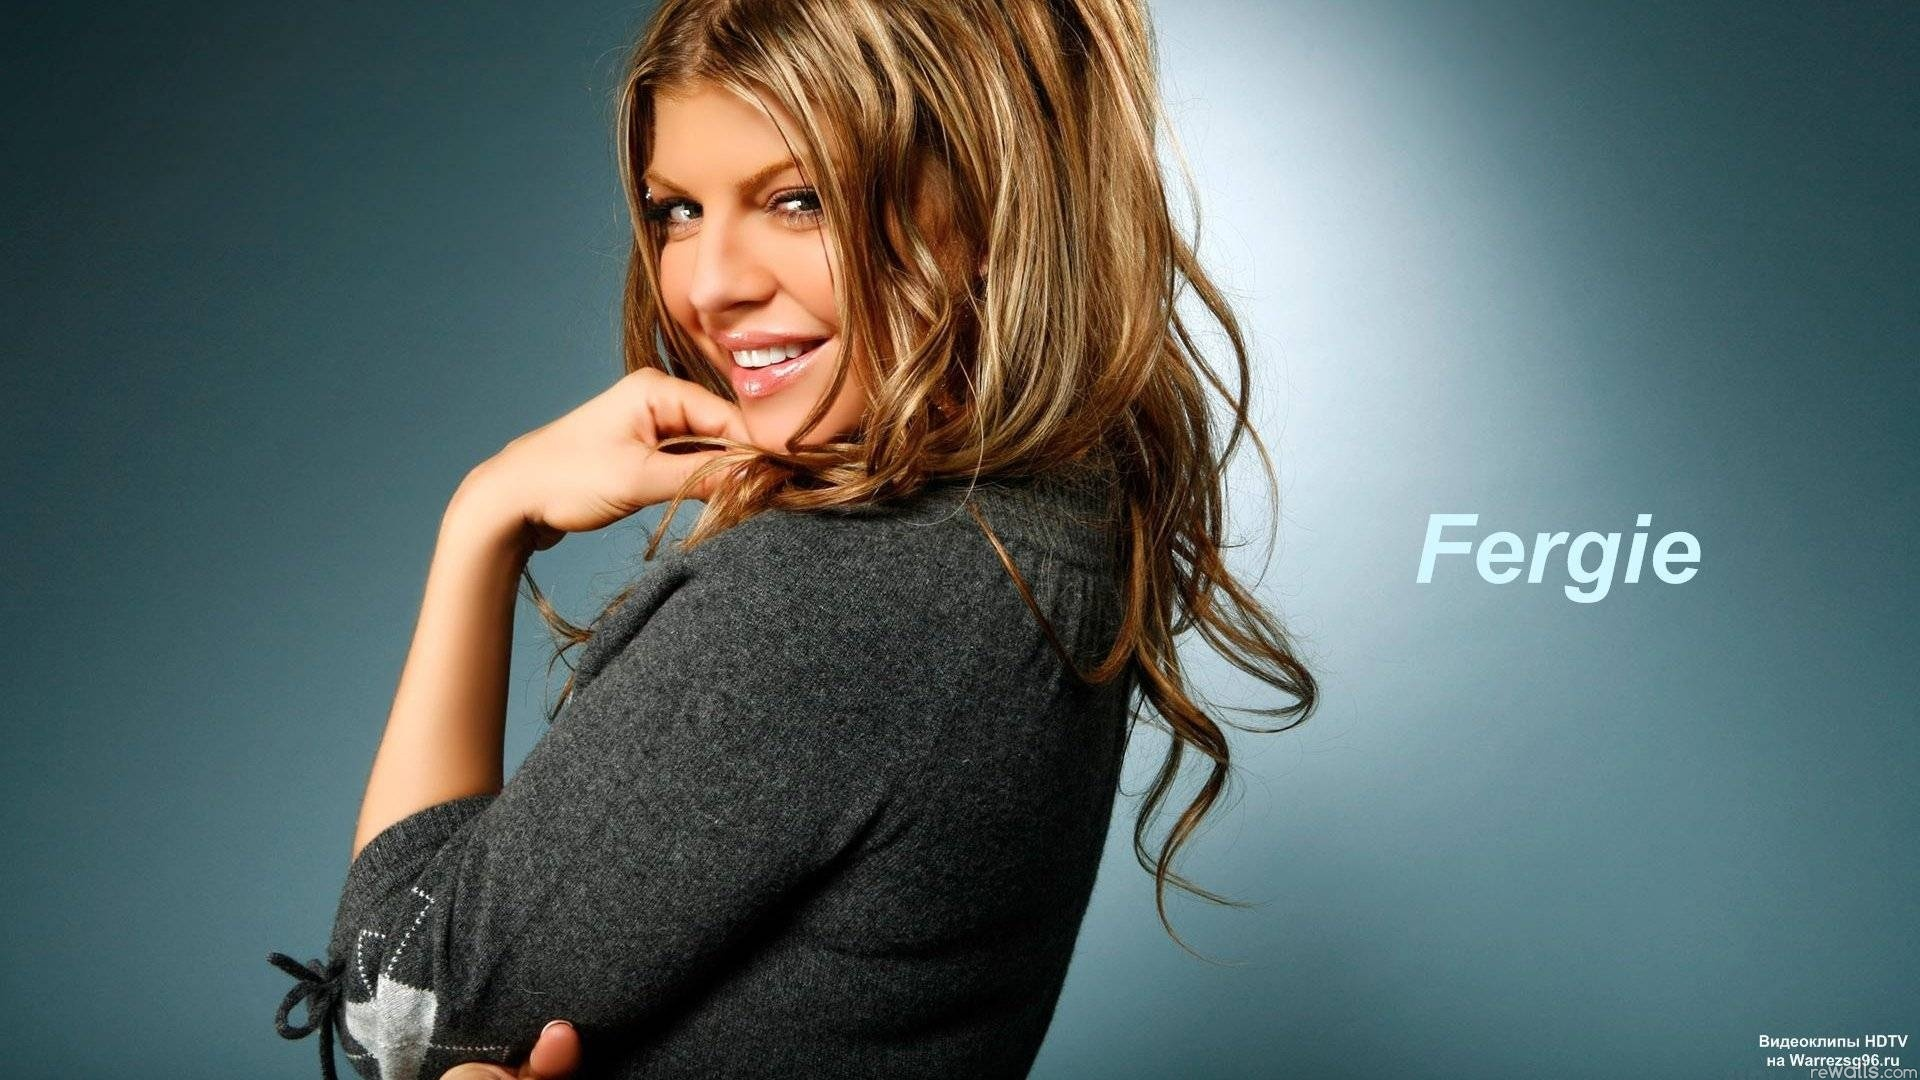 Fergie Wallpaper | Wal... Fergie